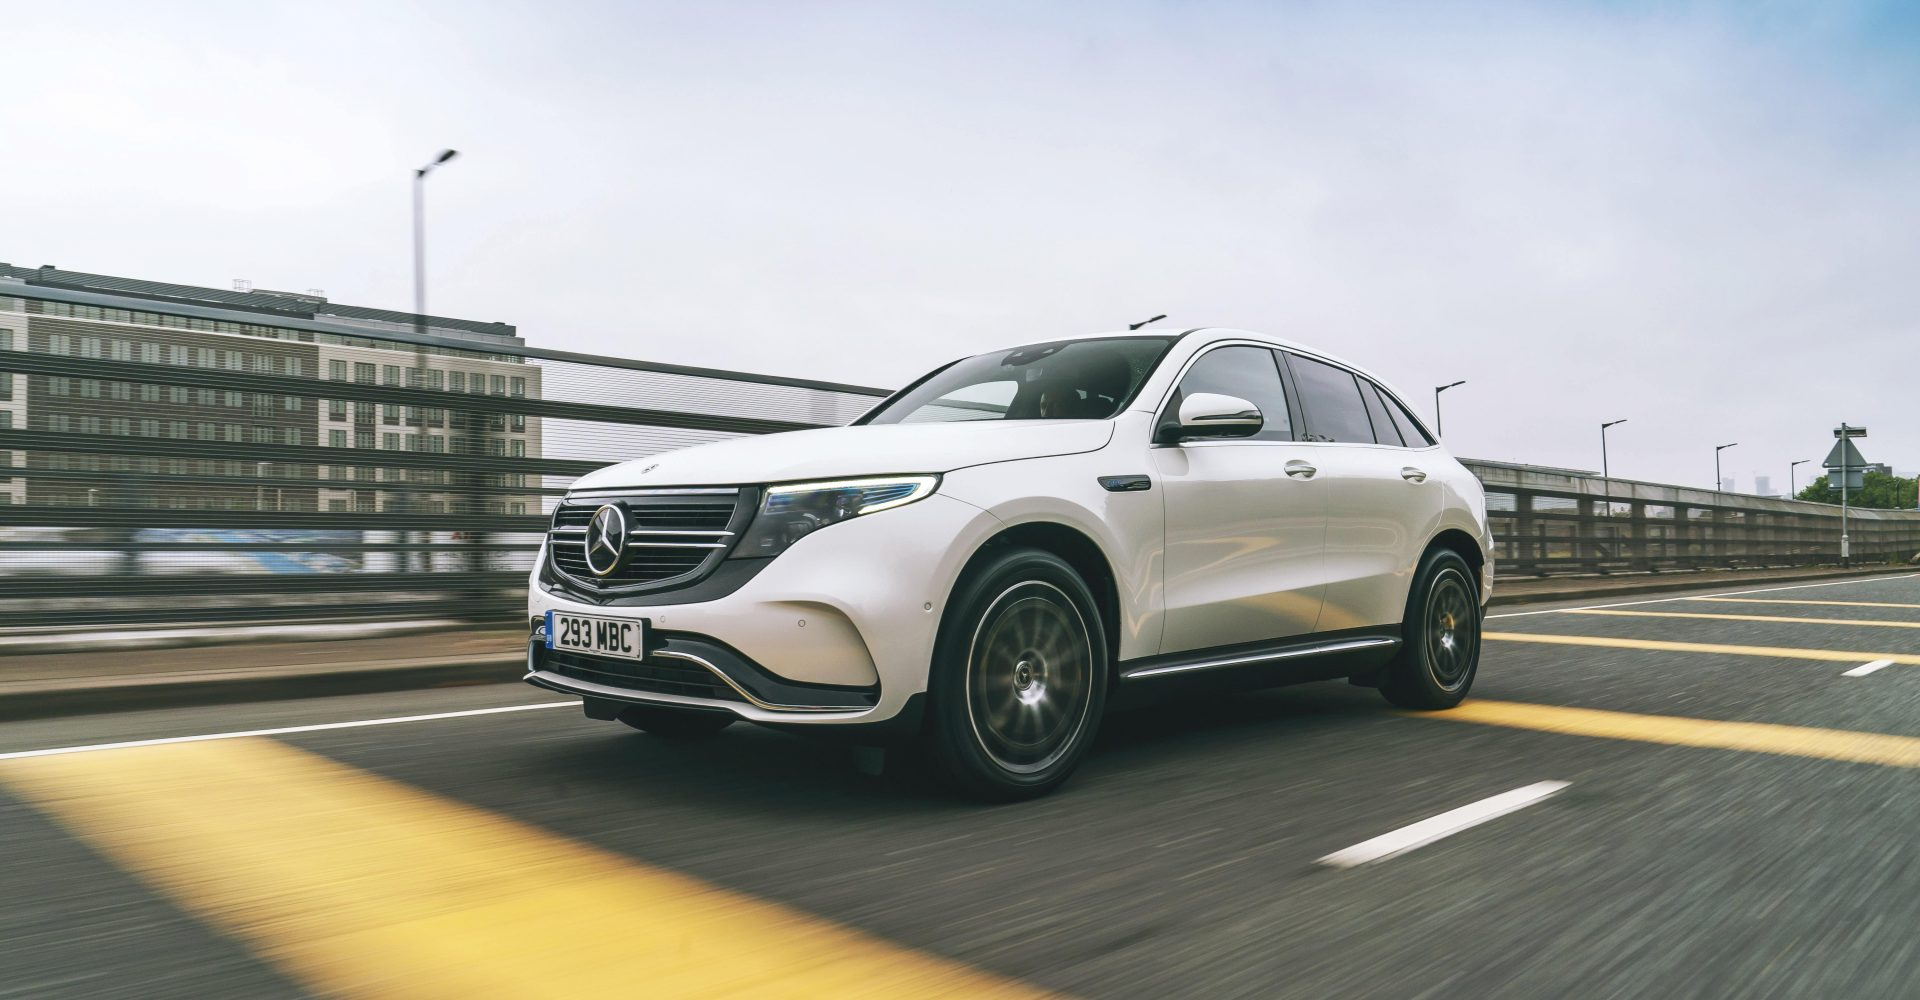 First Drive: The Mercedes-Benz EQC takes on premium EV rivals